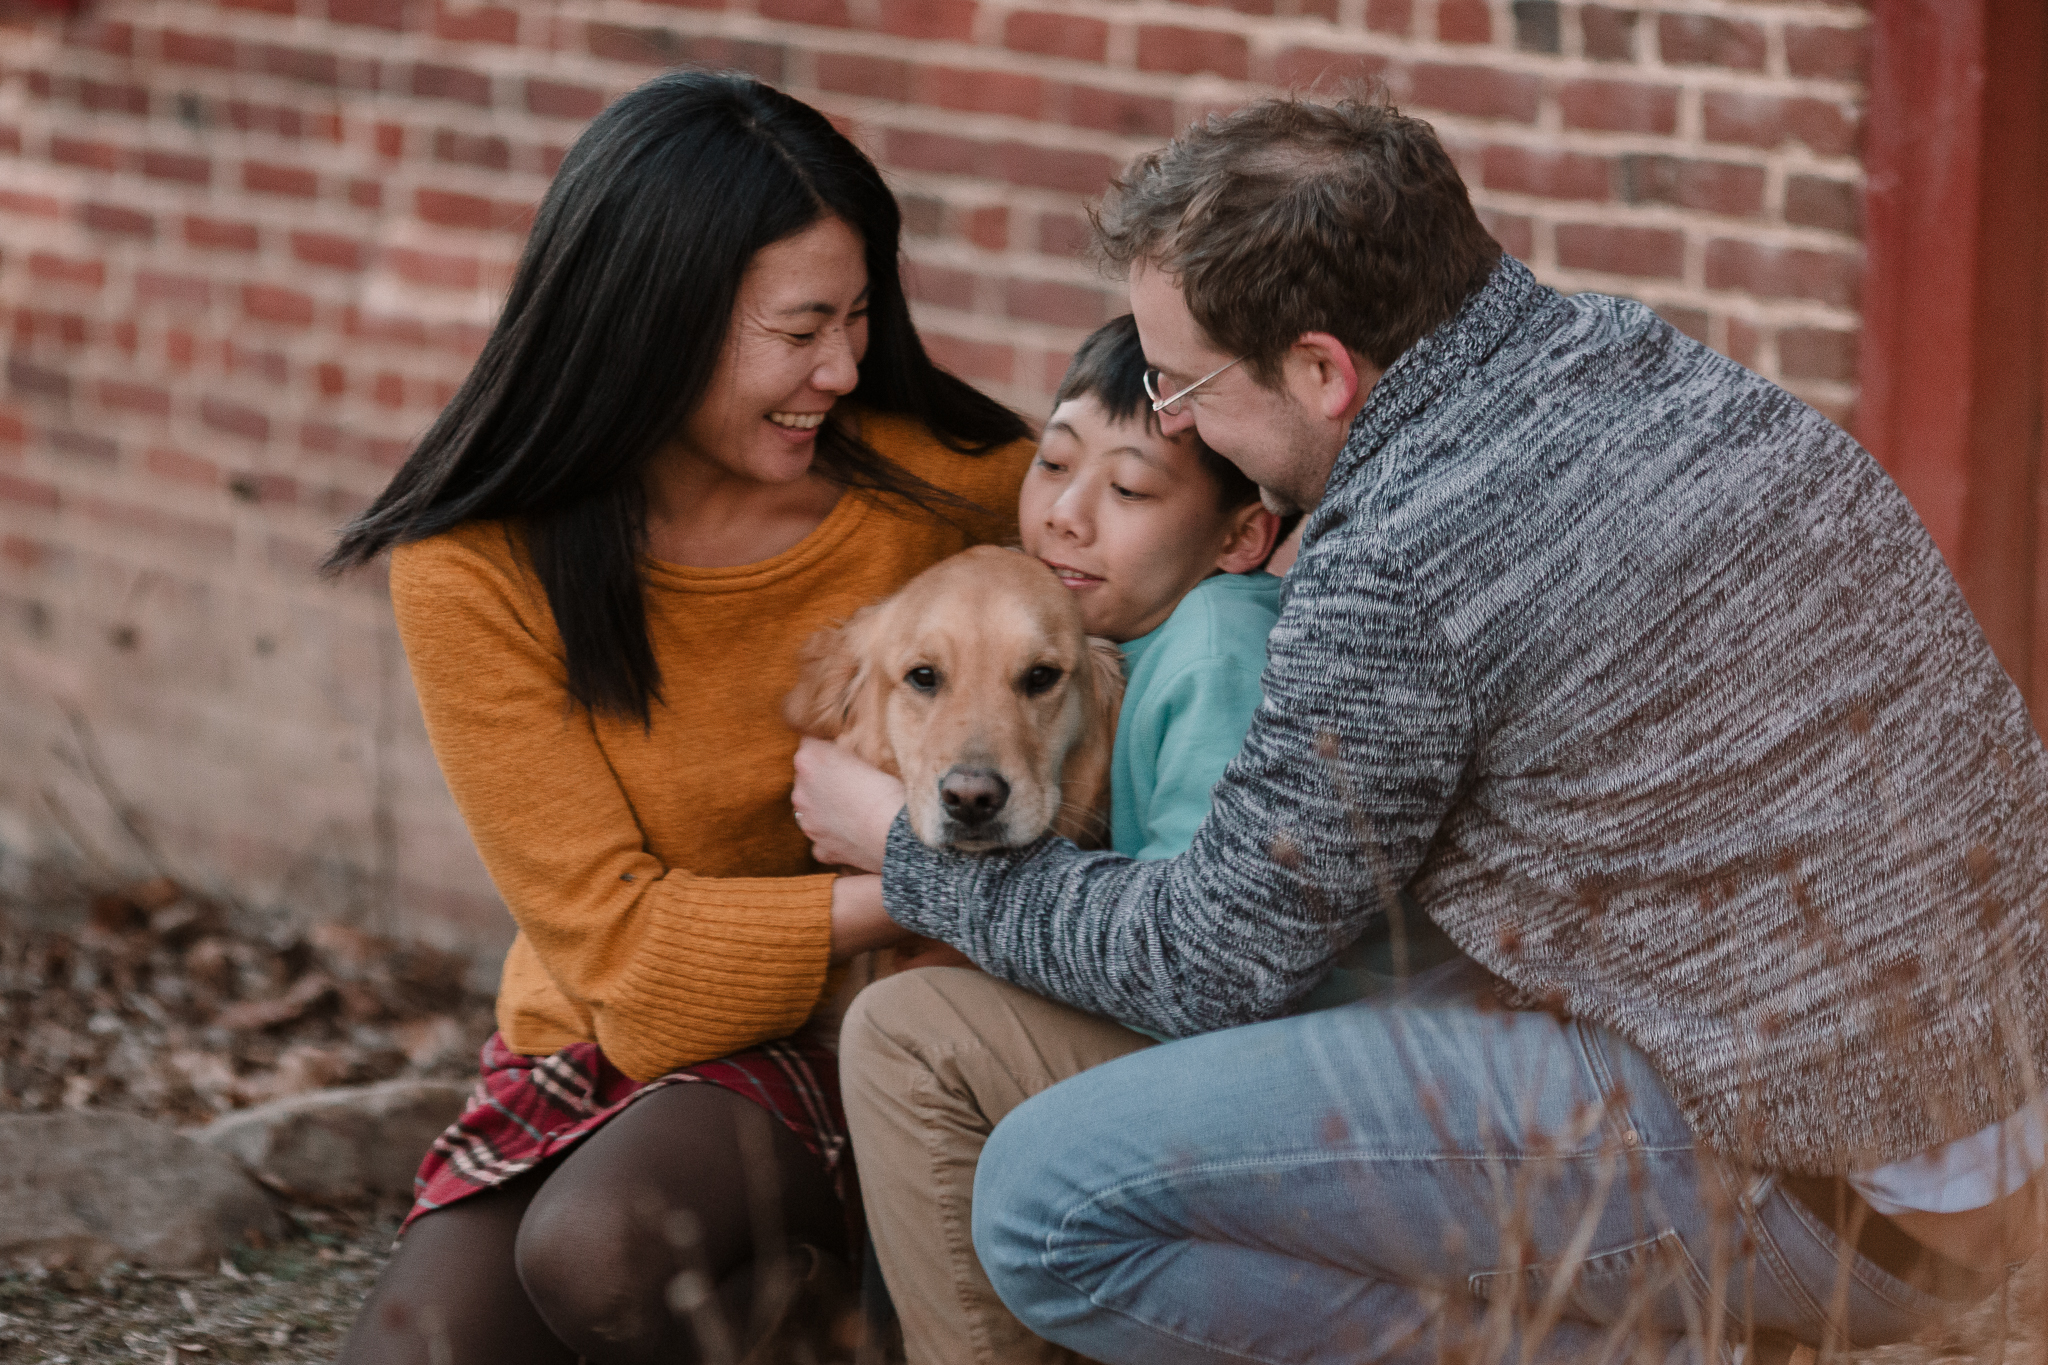 mother father son dog Lifestyle Documentary Found Families Adoption Outdoor Golden Hour Sunset Colvin Run Mill Great Falls Virginia Marti Austin Photography